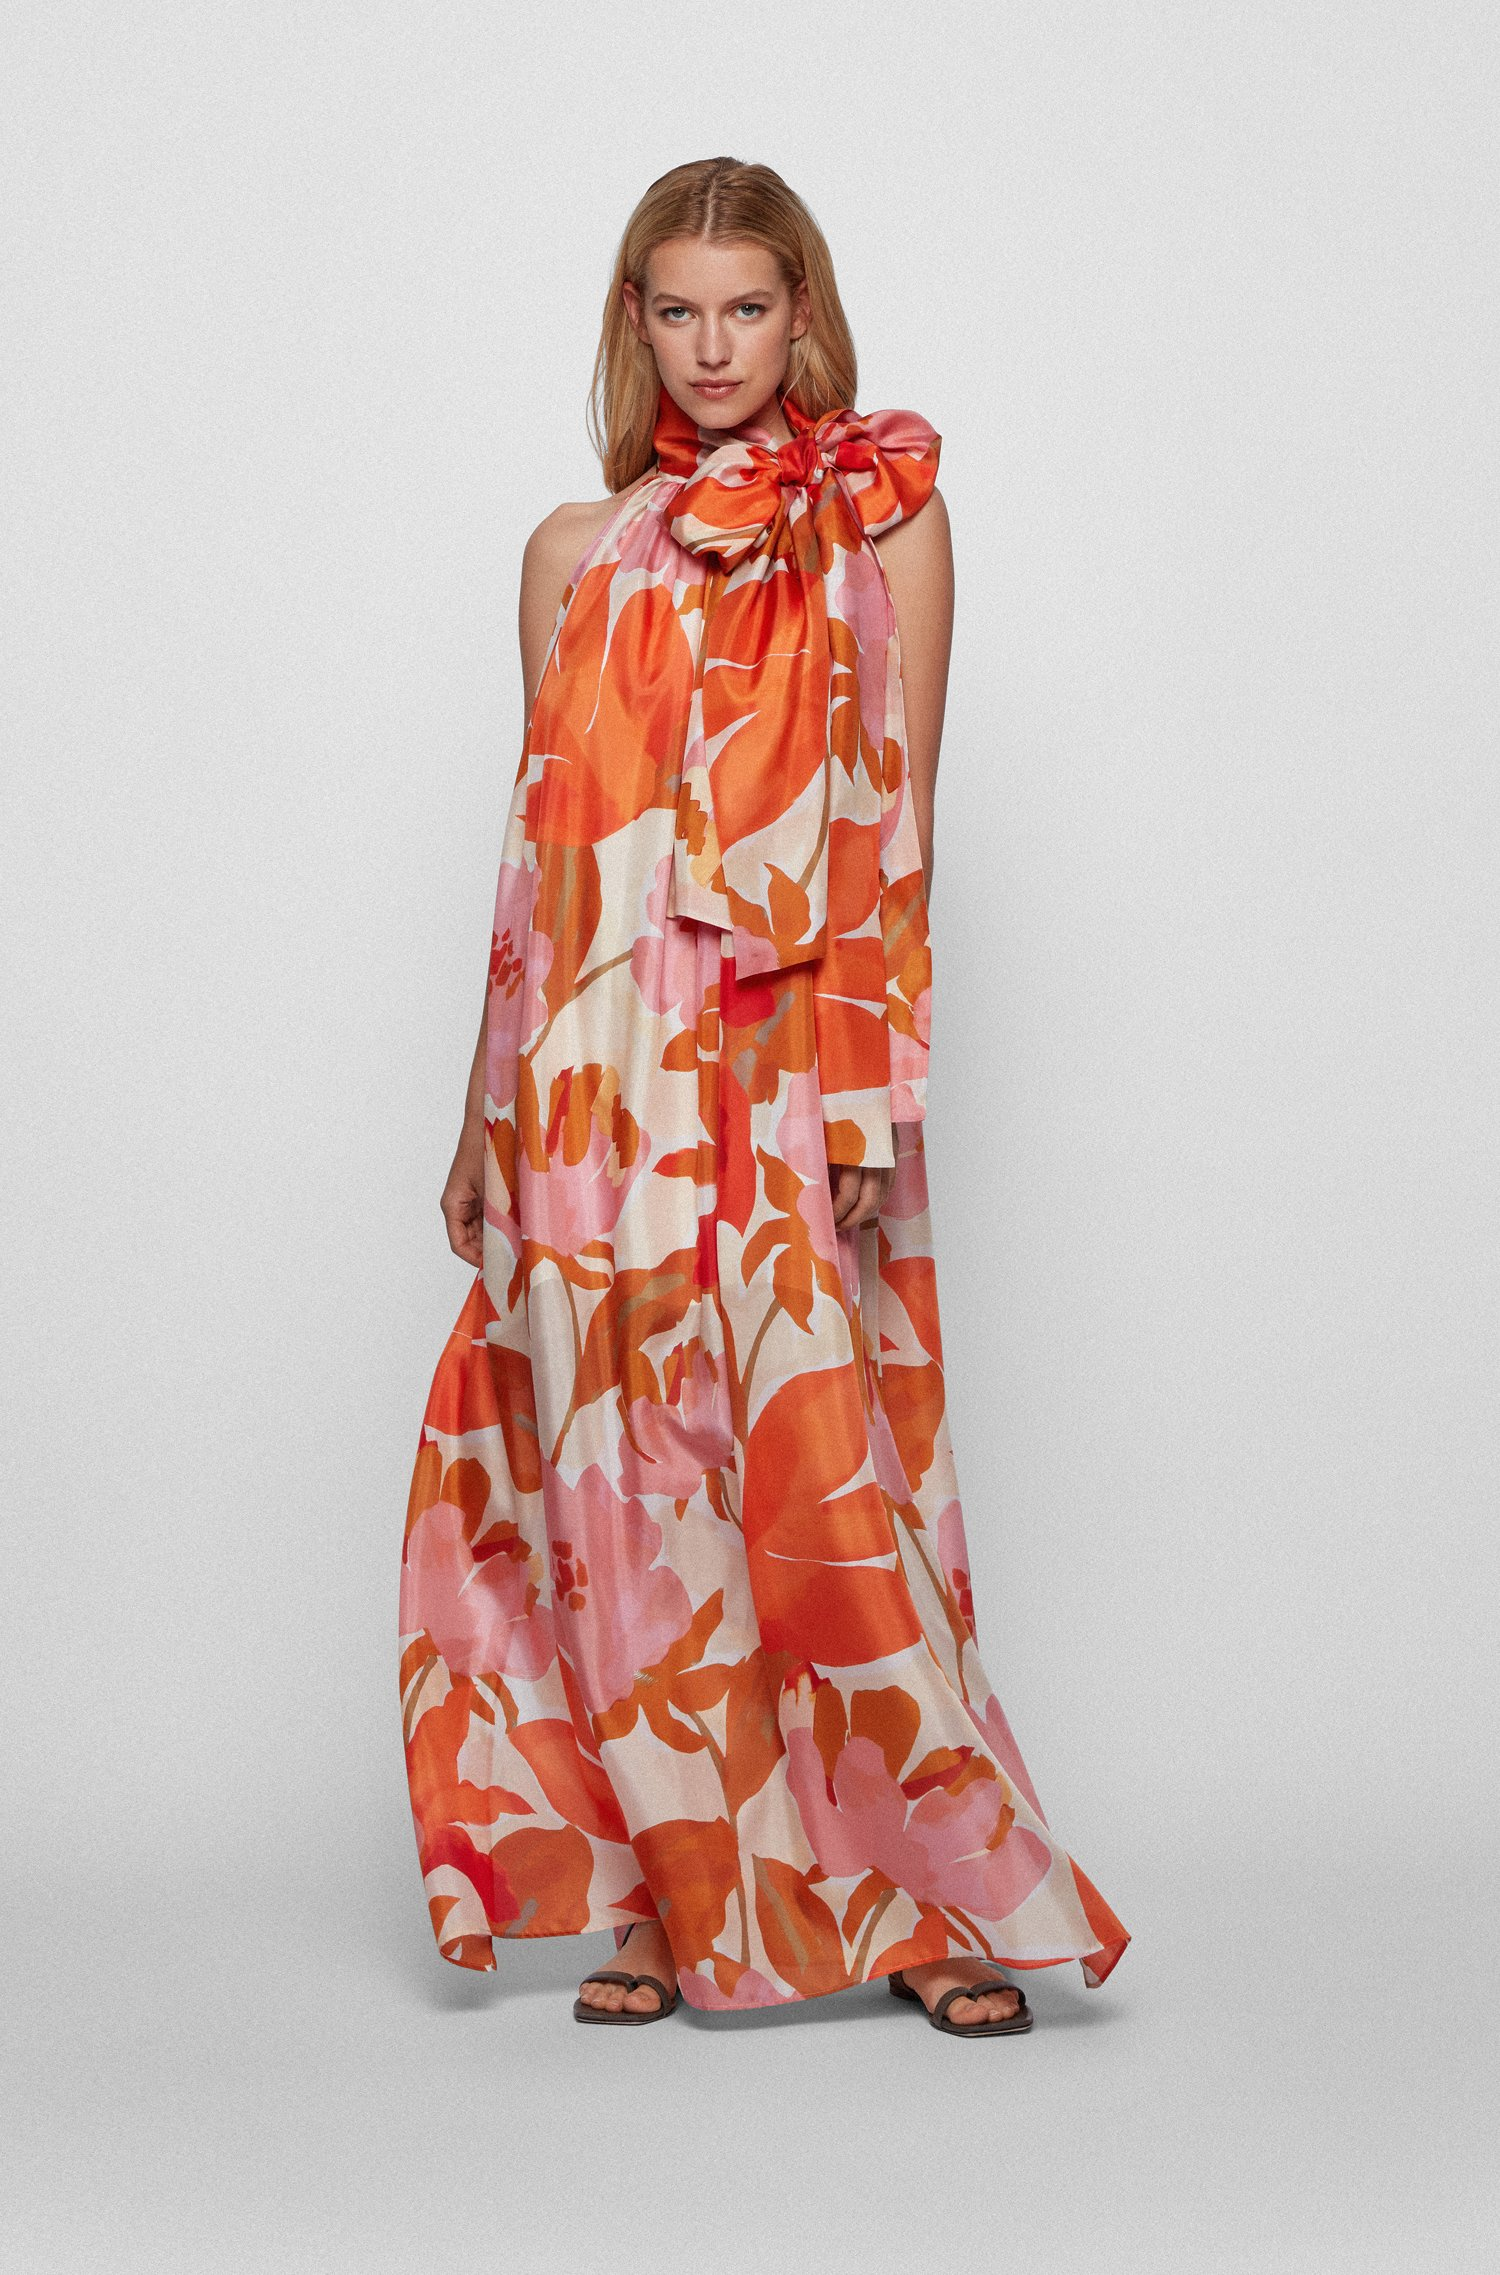 Printed-silk maxi dress with tie neck, Patterned